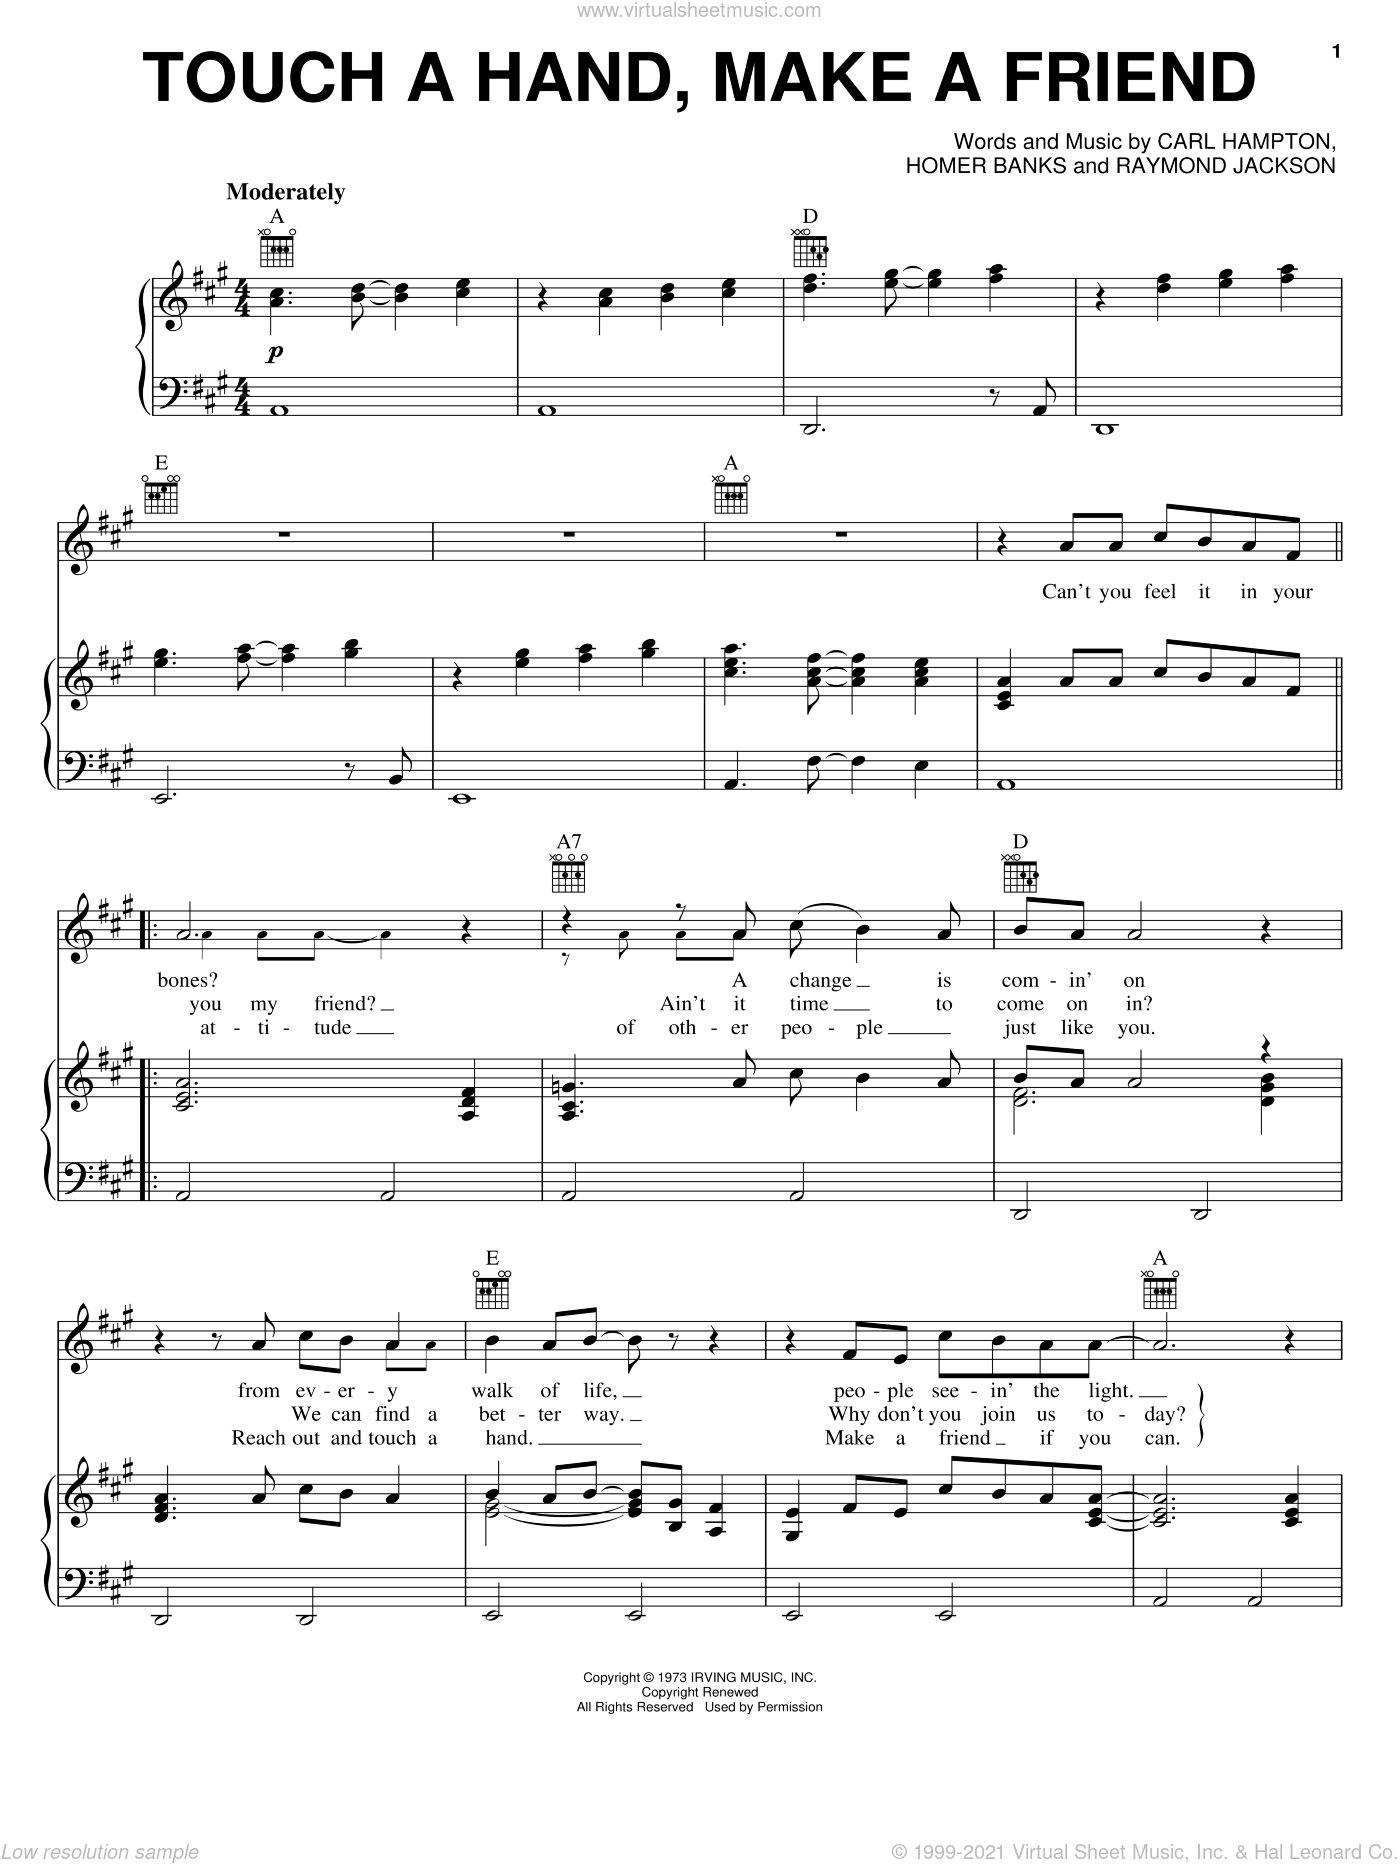 Touch A Hand, Make A Friend sheet music for voice, piano or guitar by The Staple Singers, Oak Ridge Boys, Carl Hampton, Homer Banks and Raymond Jackson, intermediate skill level